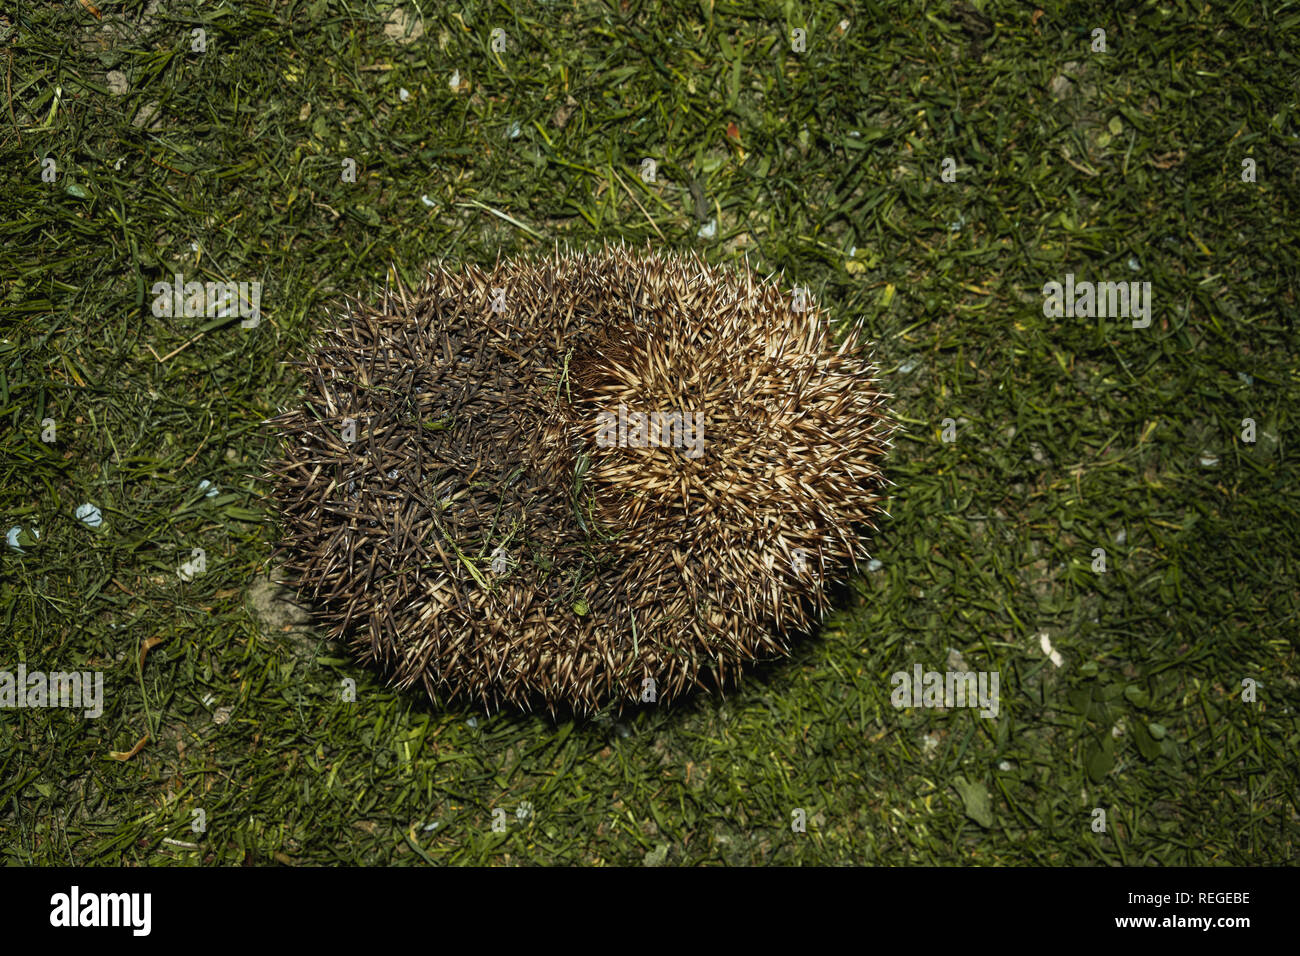 Forest wild hedgehog on a green lawn 2019 - Stock Image